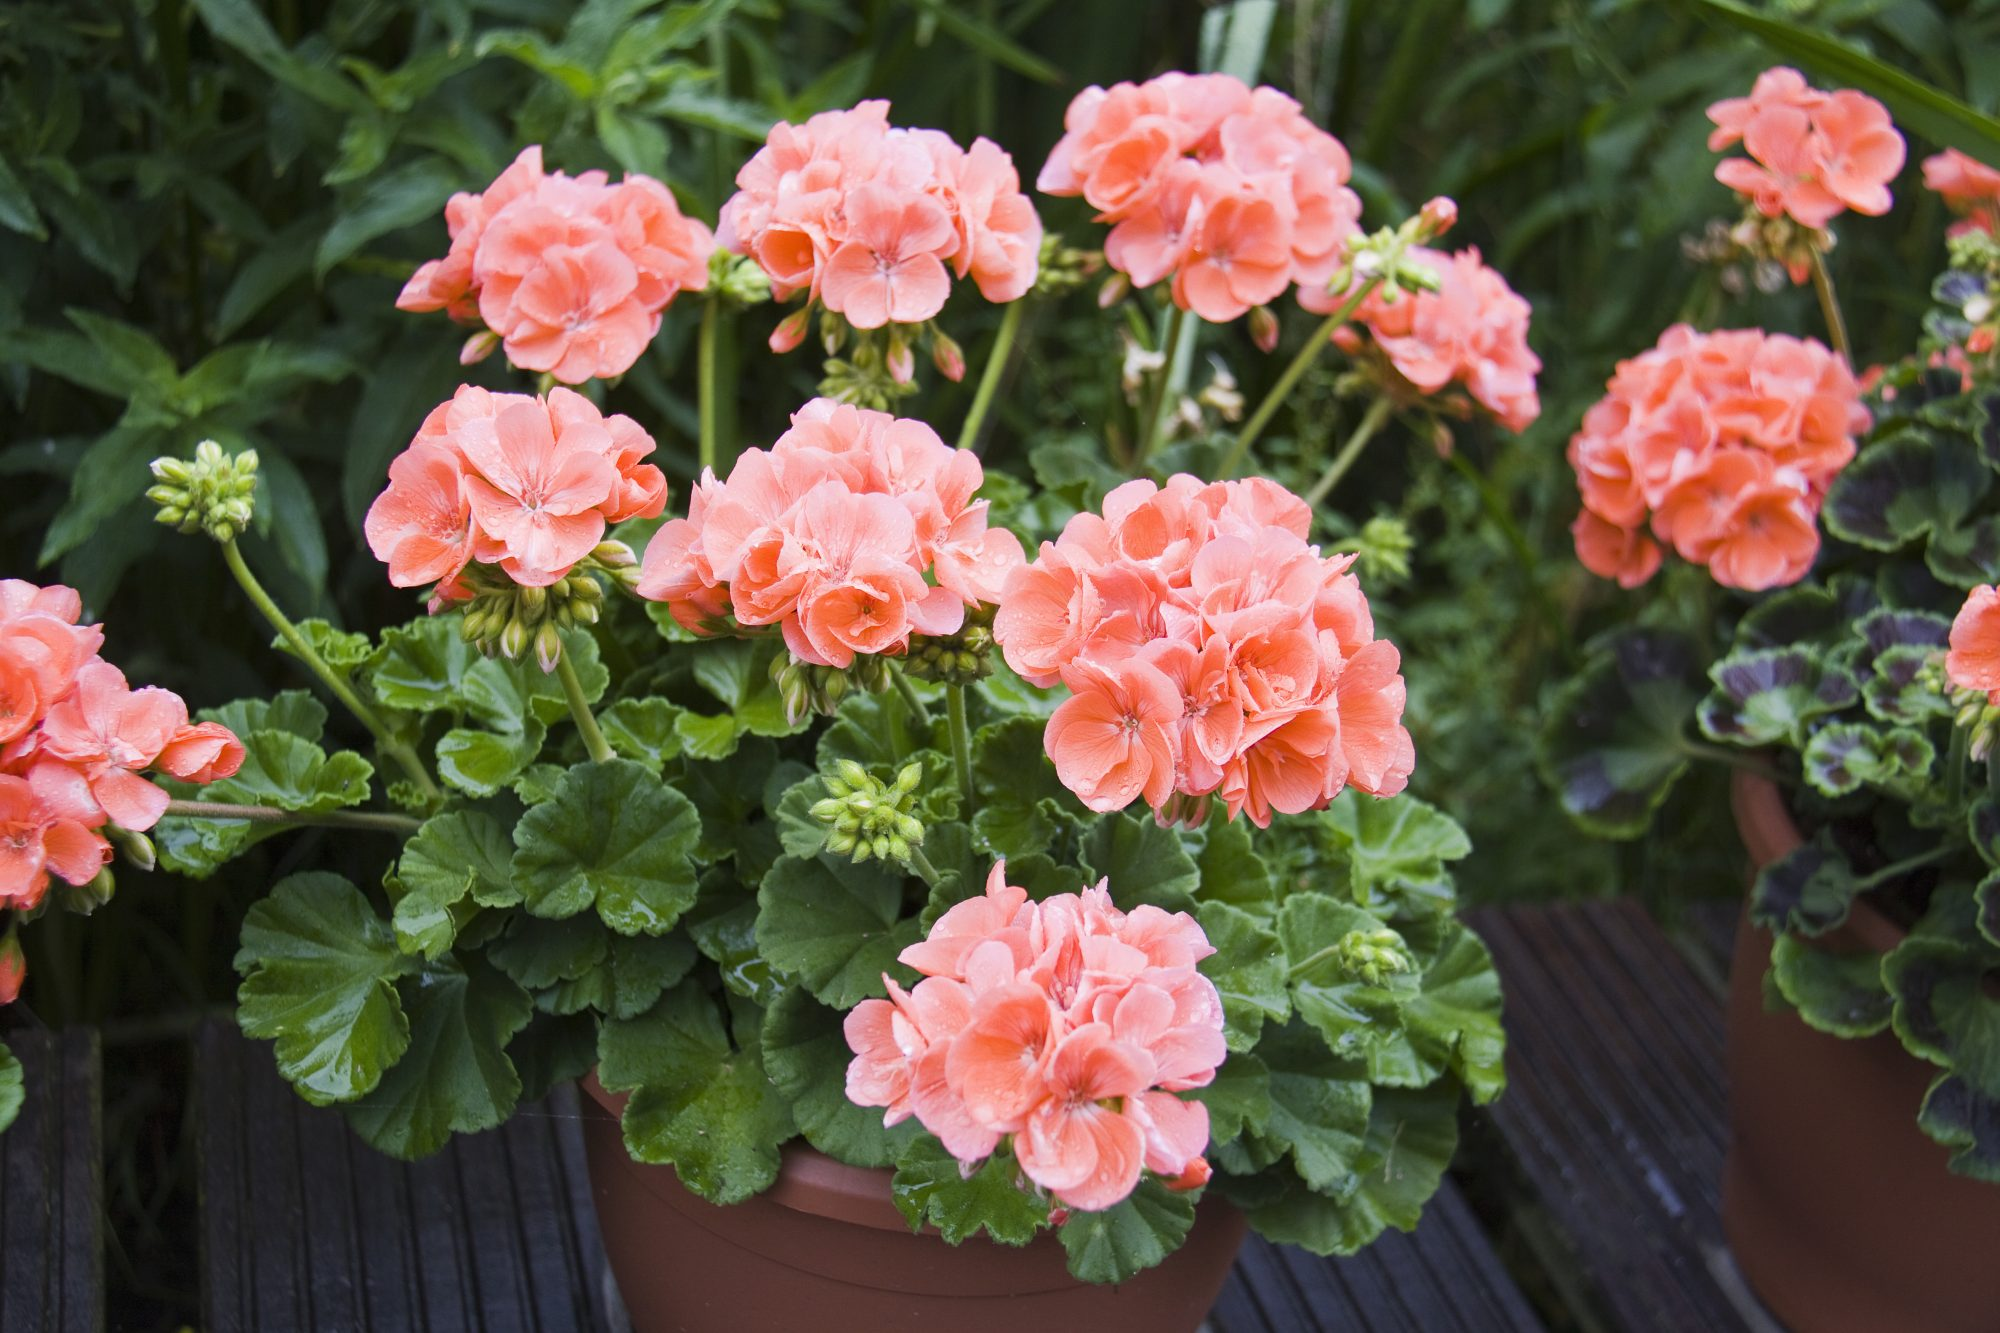 10 Facts About Geraniums That Gardeners Should Know